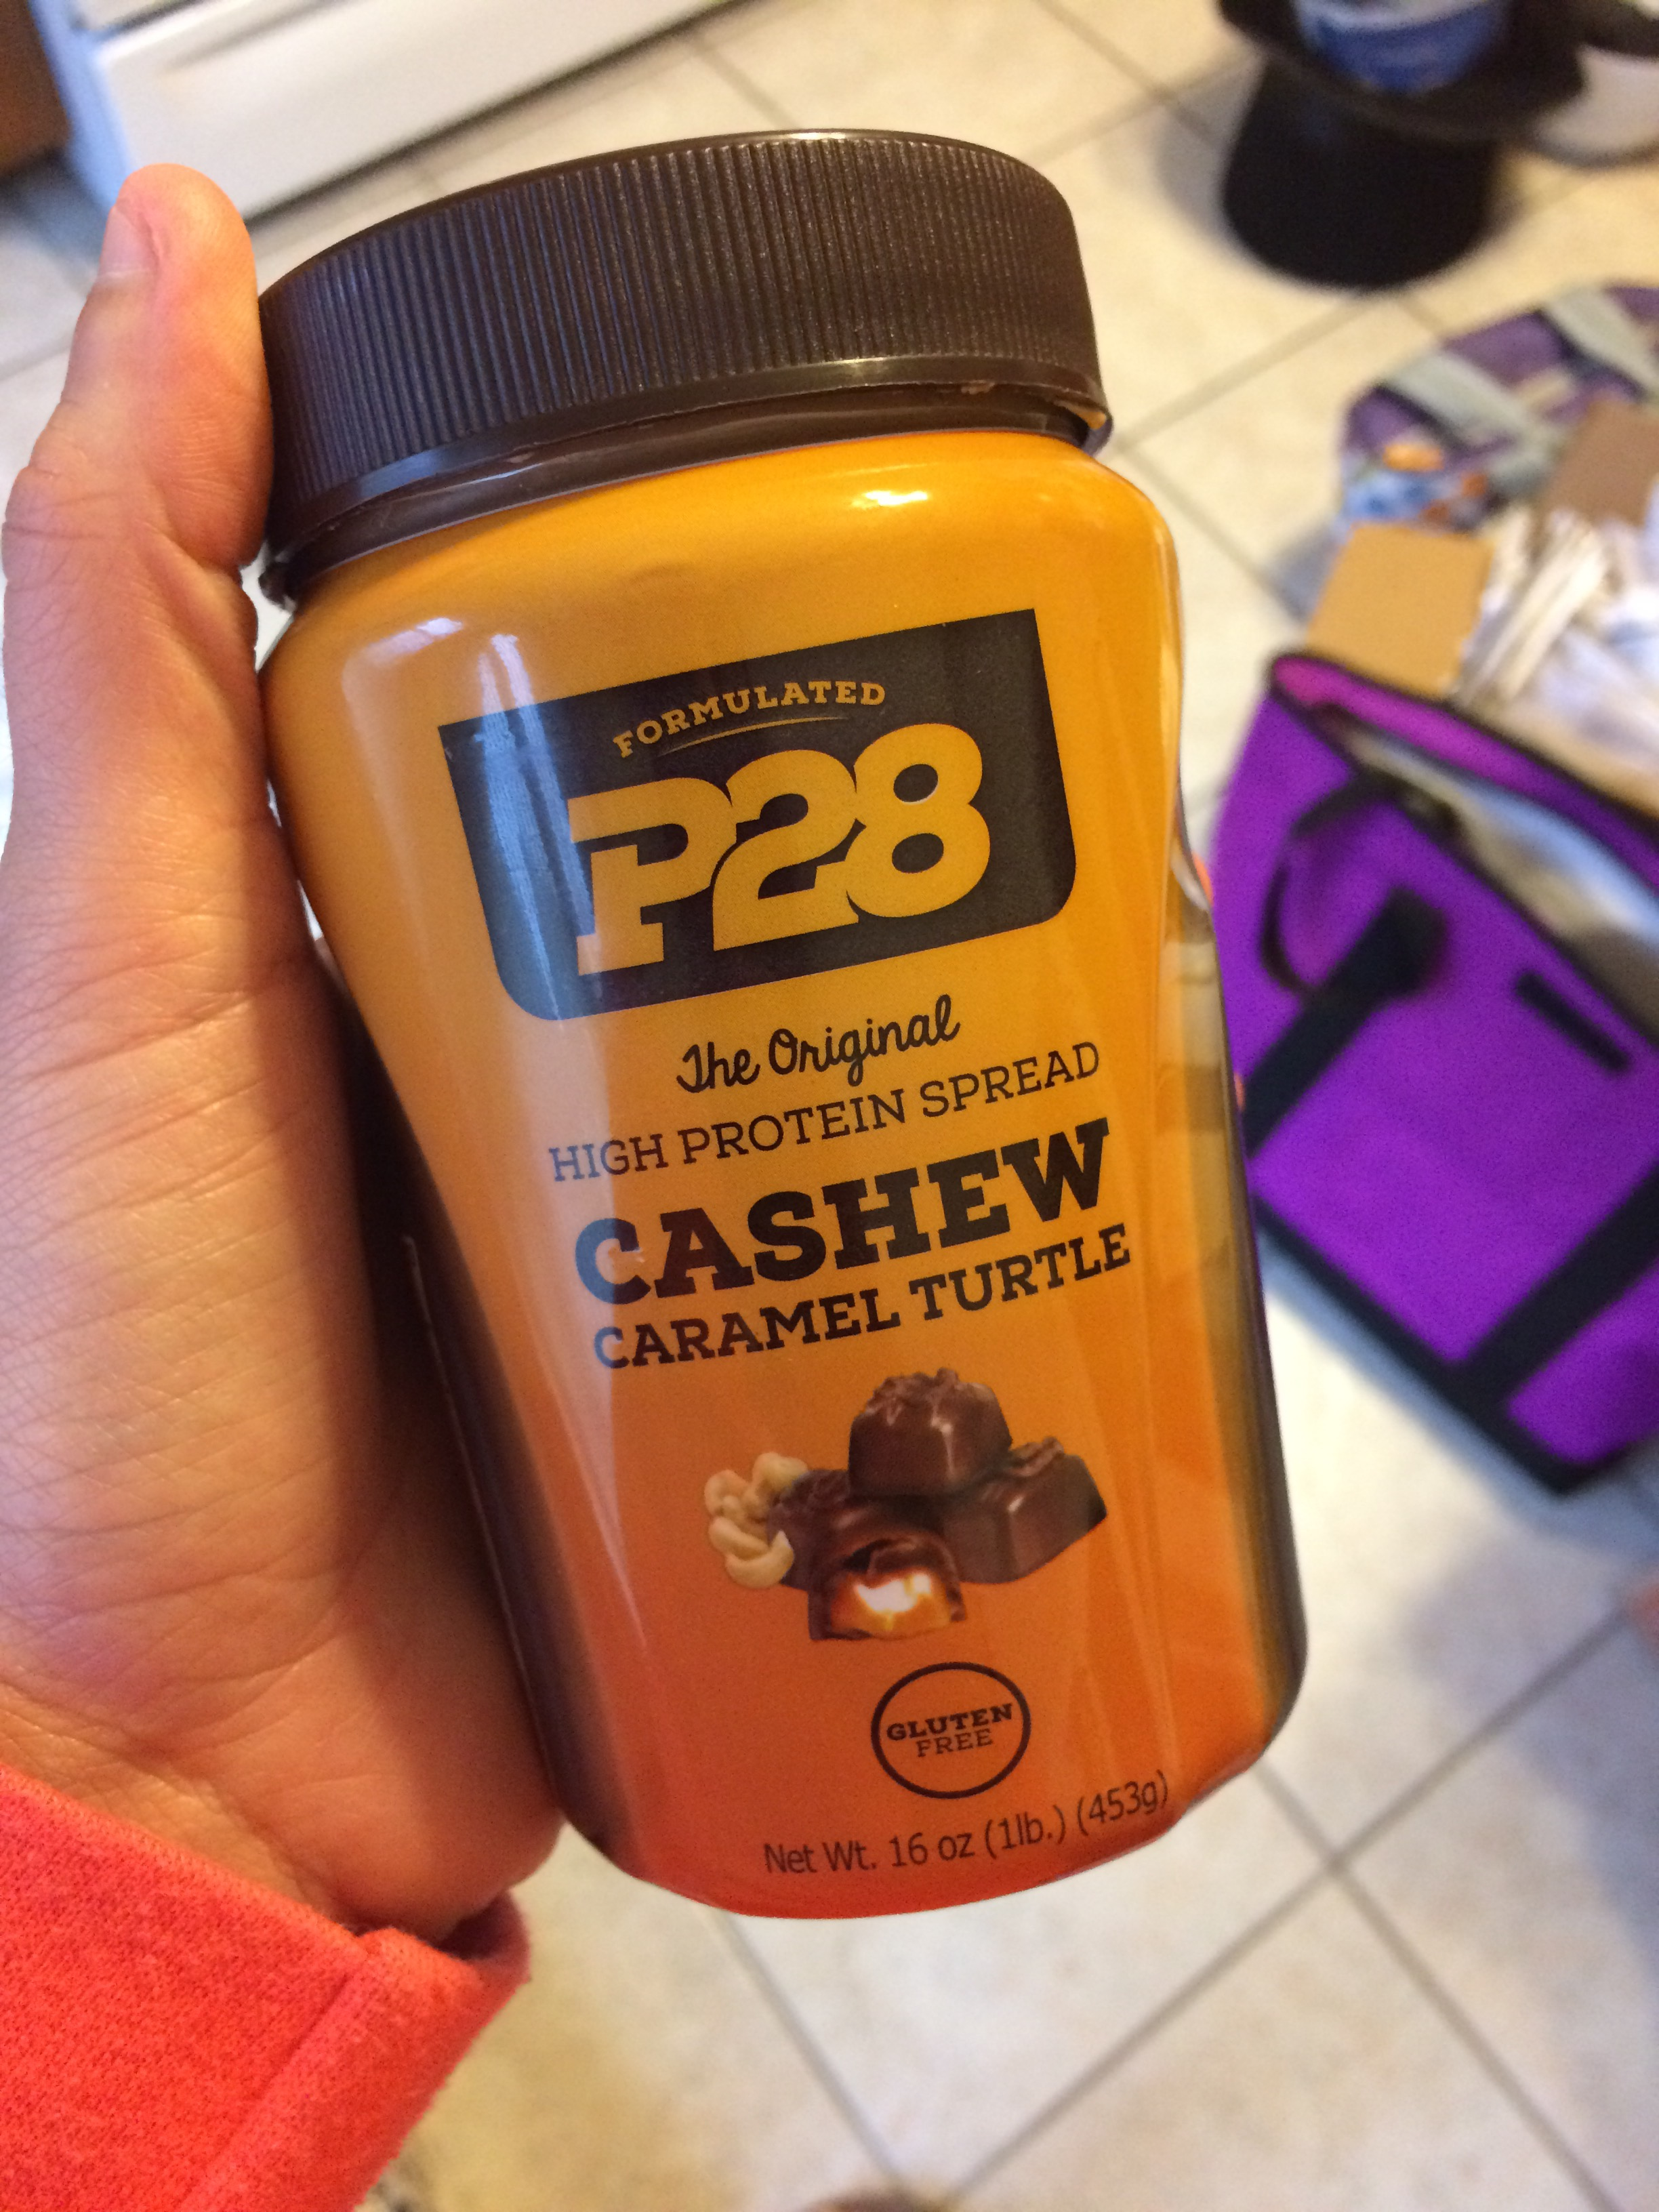 Found: P28 Cashew Caramel Turtle High Protein Spread